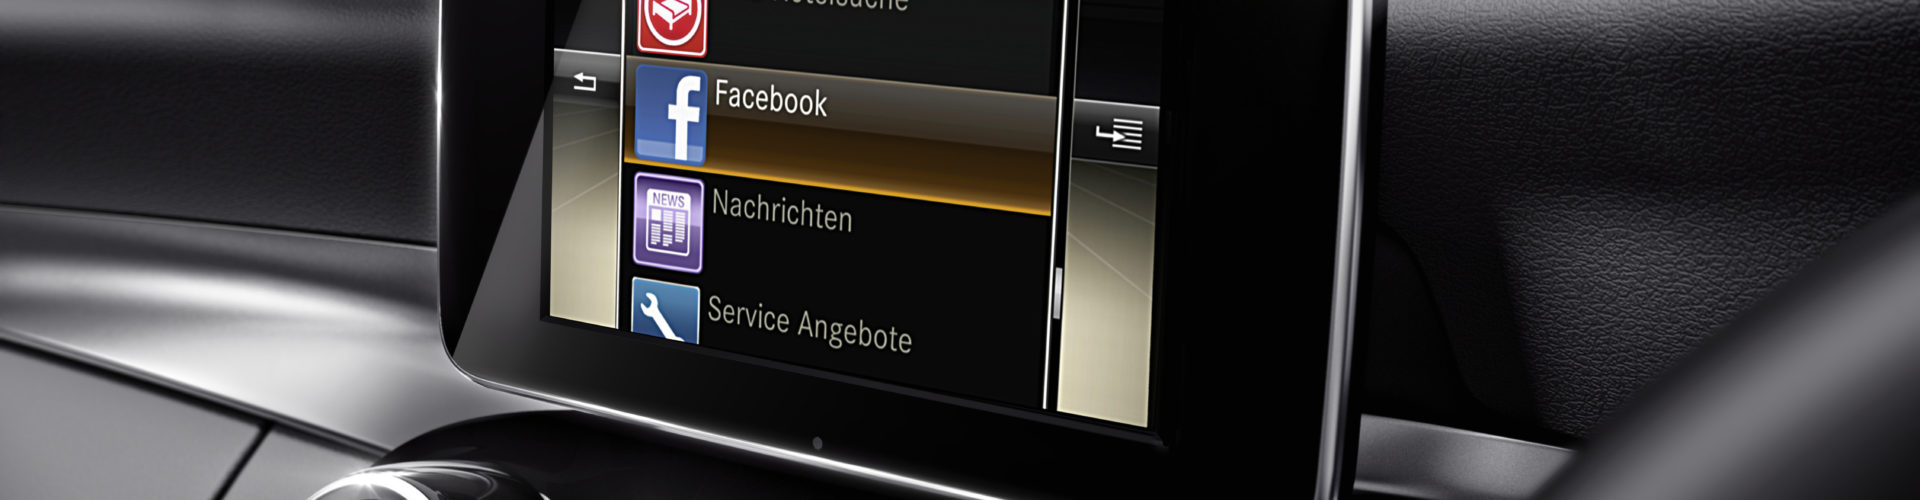 Mercedes-Benz Original-Zubehör für die C-Klasse: COMAND Online mit 6-fach DVD-Wechsler und den Mercedes-Benz Apps für COMAND Online. 